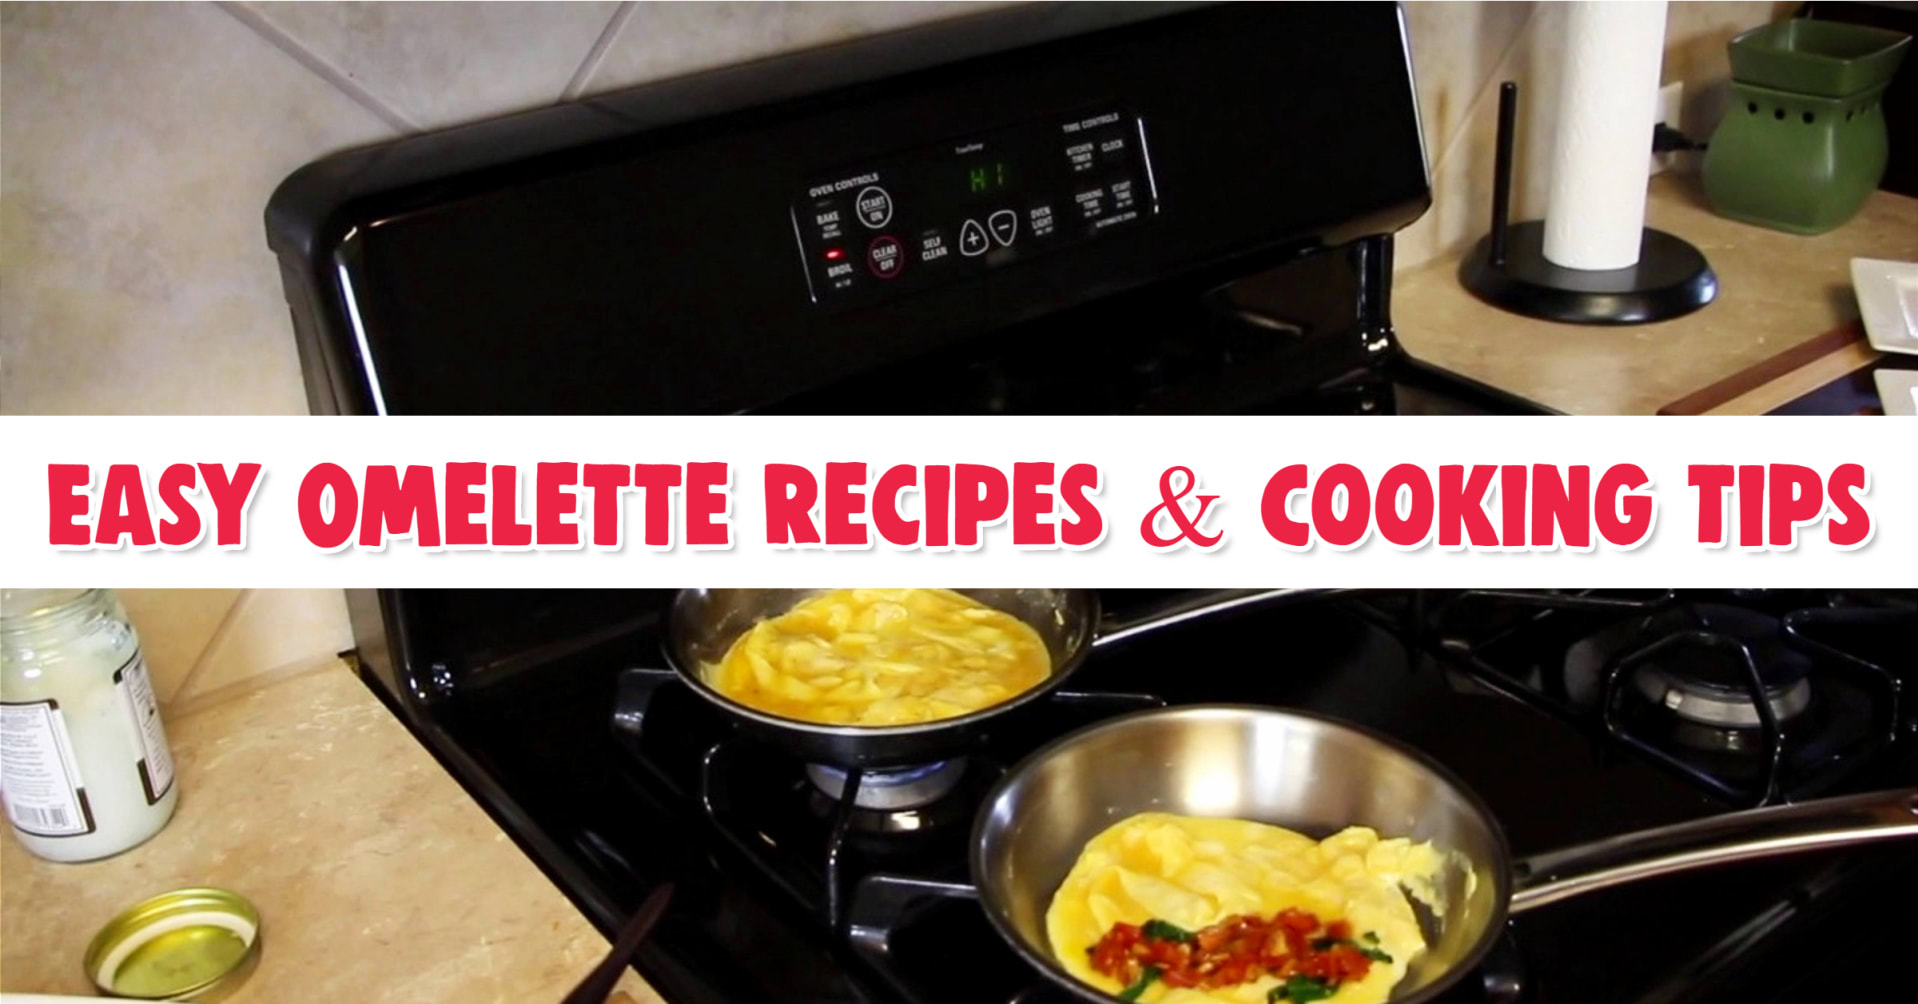 Easy Omelette Recipes - French Omelette Stainless Steel Pan - How to make omelettes easy video - Omelette recipes - how to make an omelette that doesn't stick to the pan - cook omelette in stainless steel pan - how to make an omelette videos